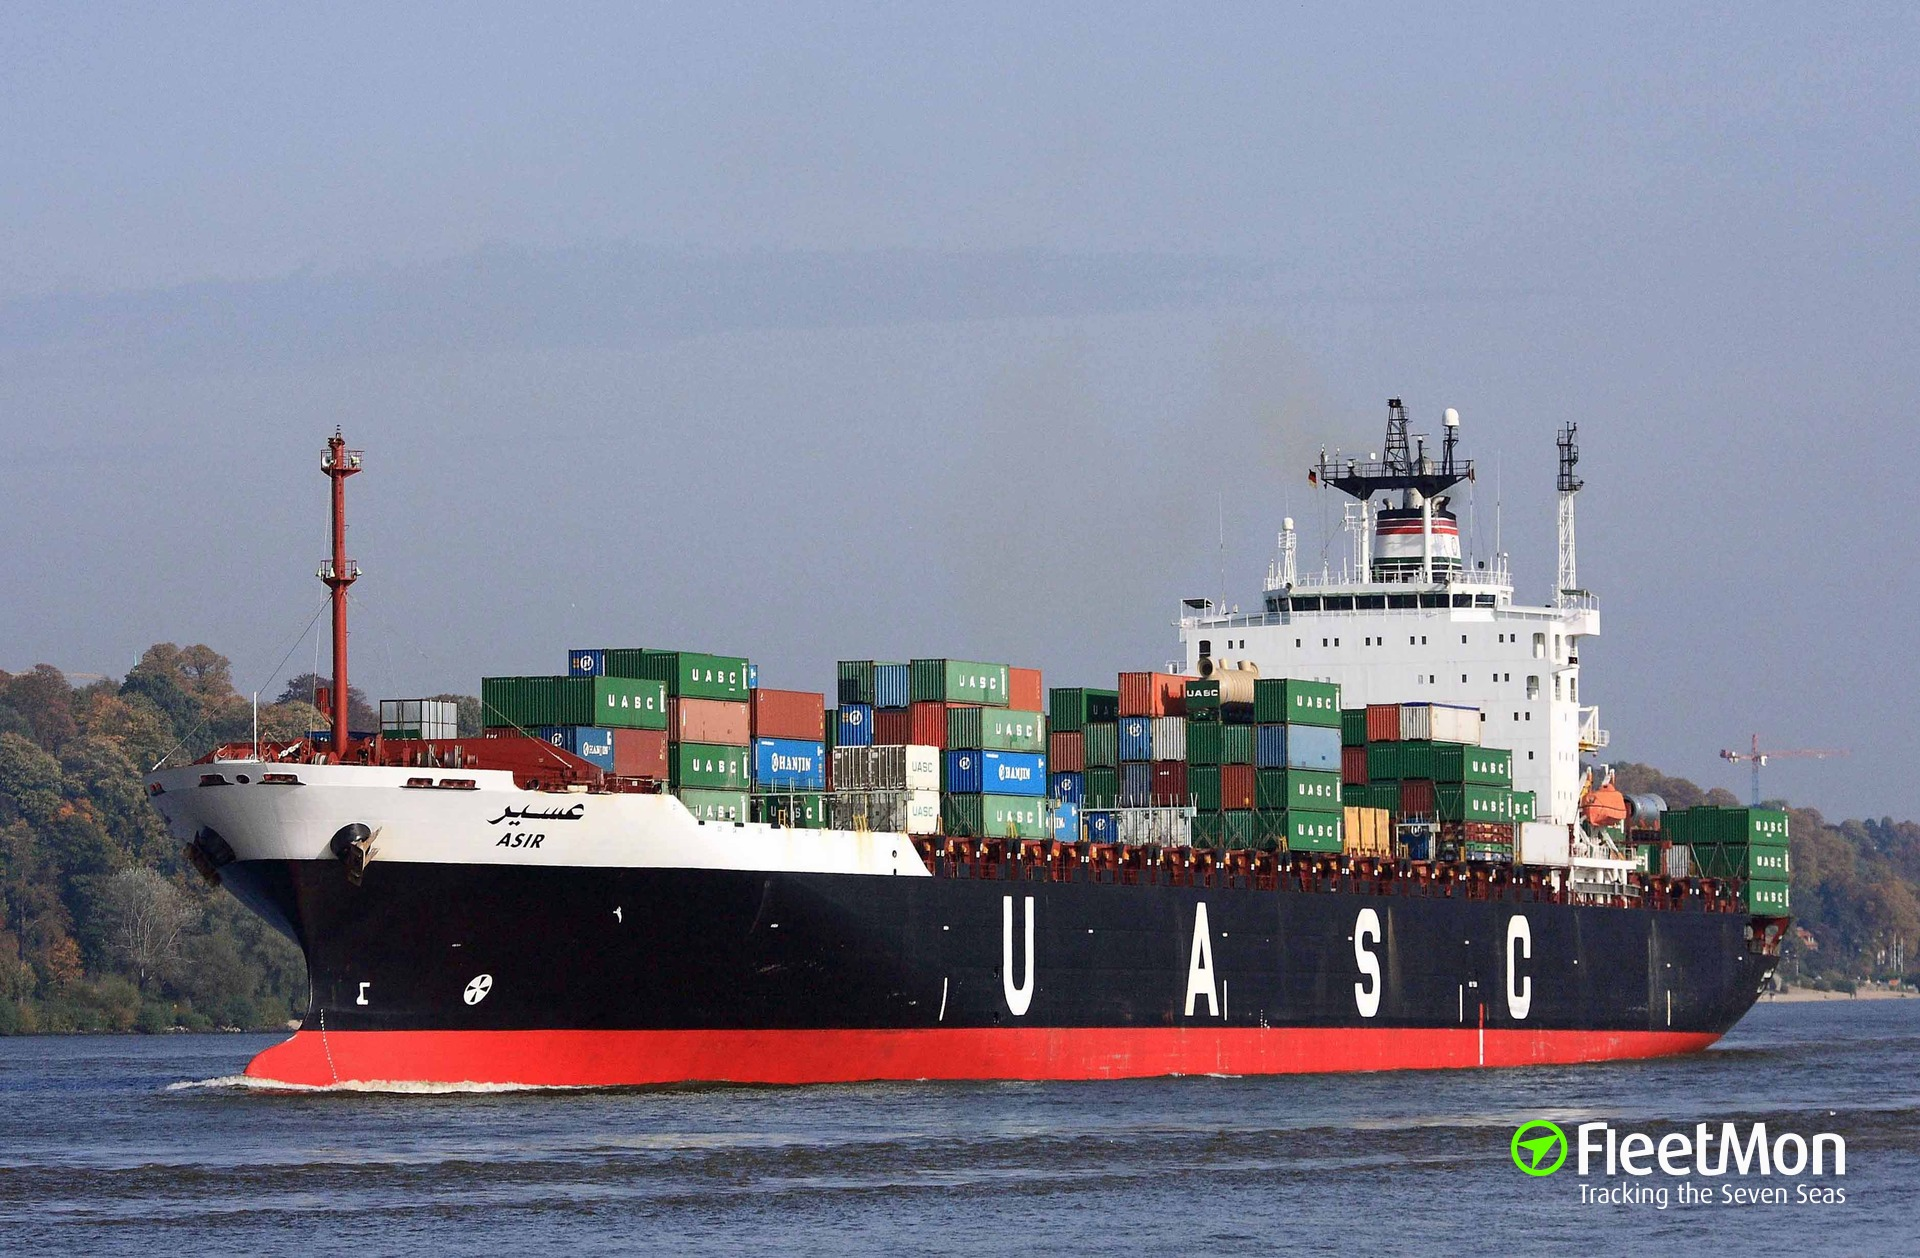 Fire on boxship Asir, 4 injured, vessel disabled, Red Sea